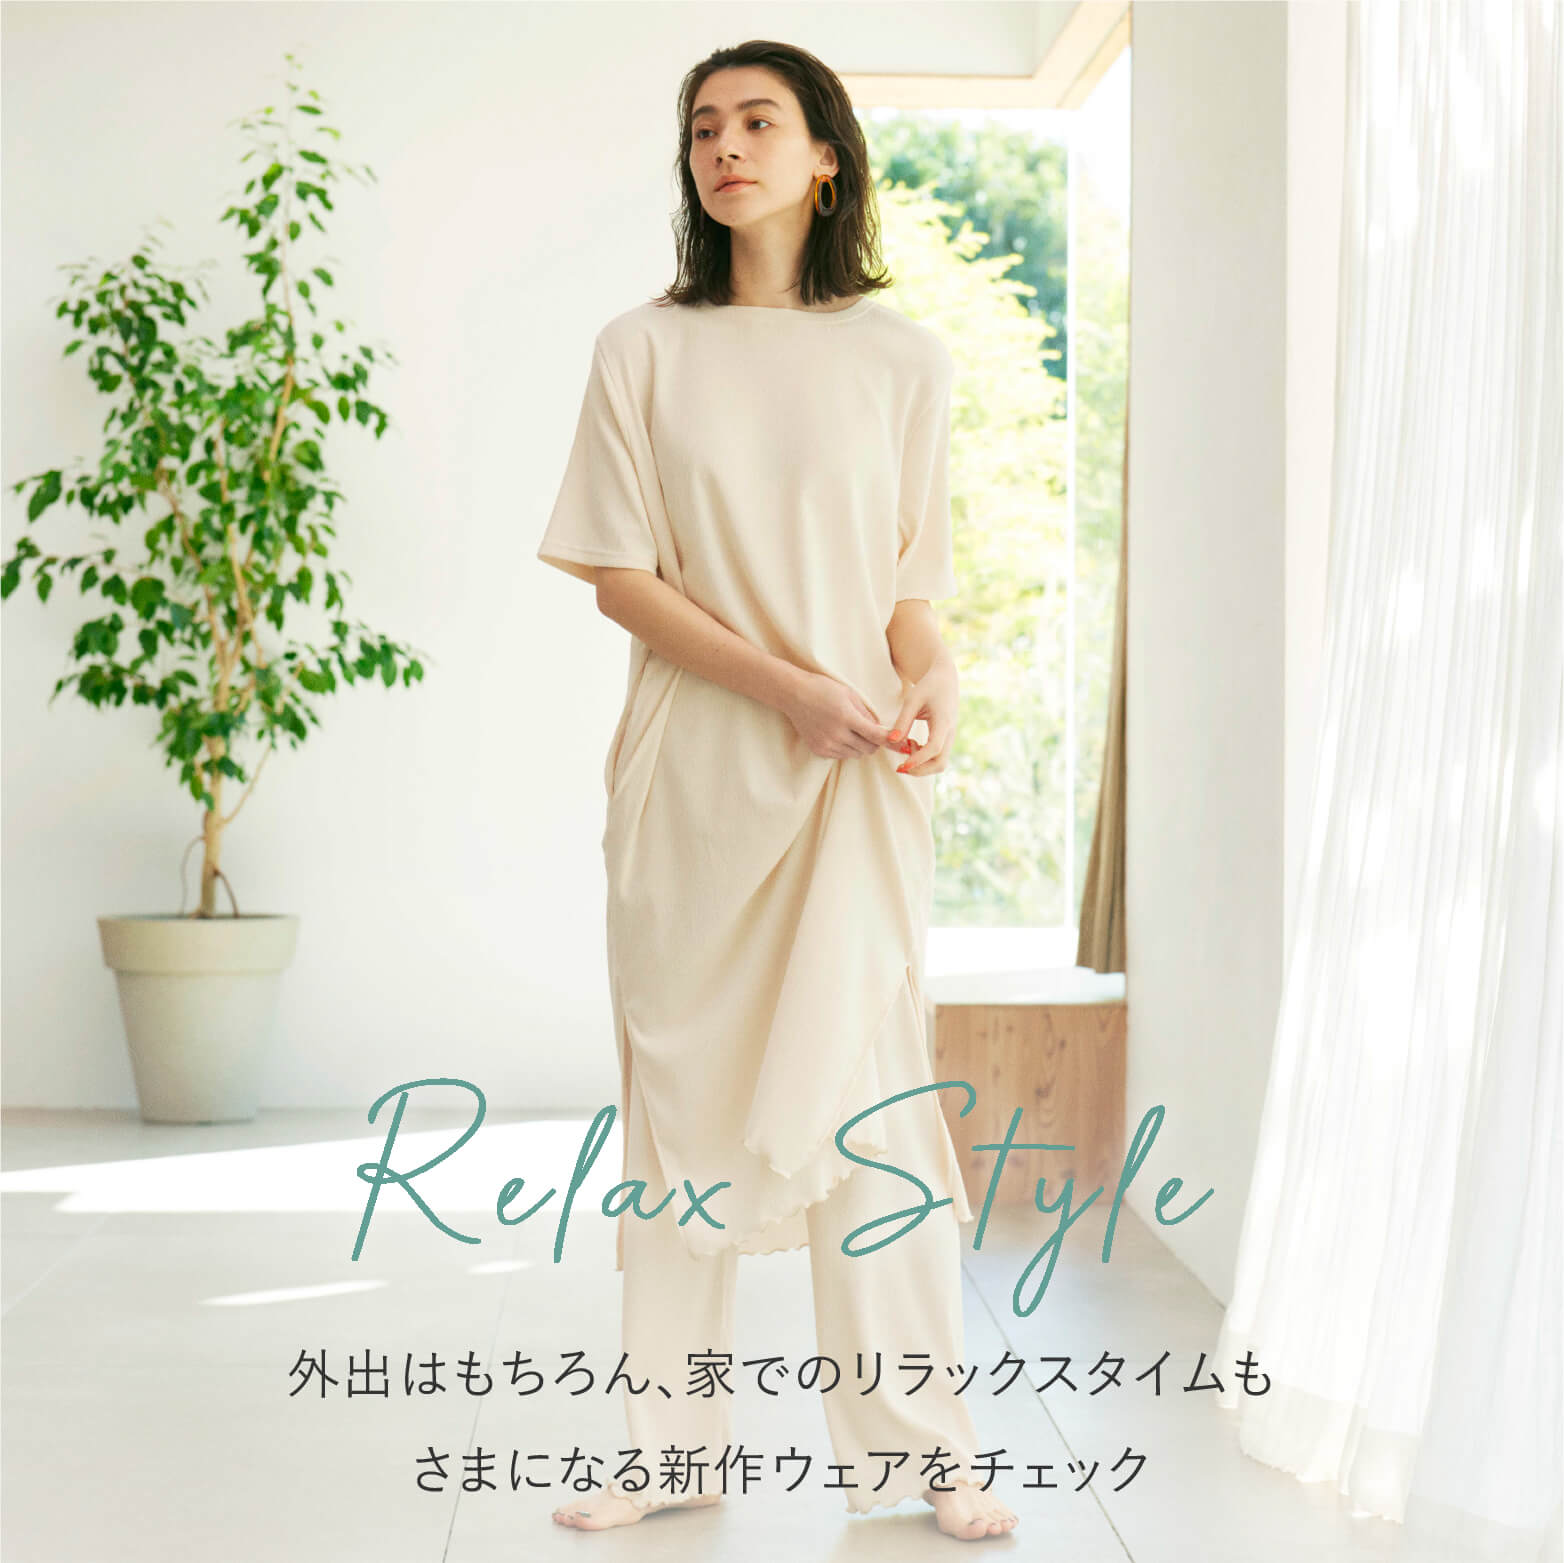 RelaxStyle